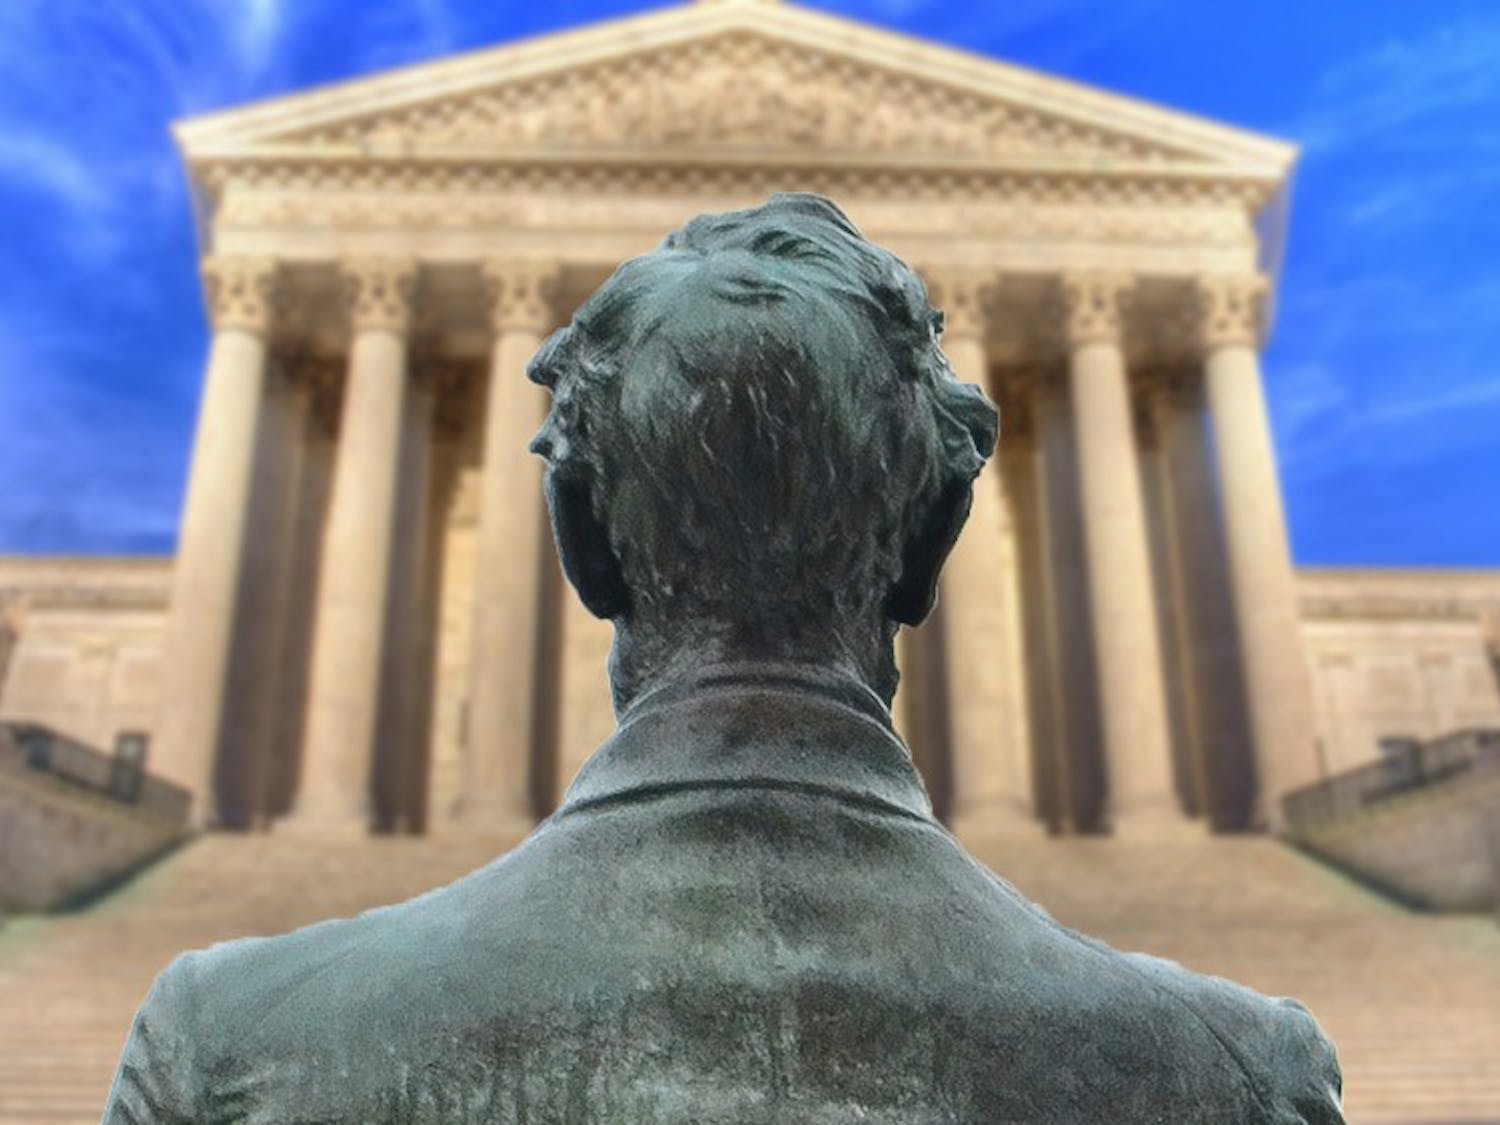 A critical Supreme Court seg fee decision on campus turns 18 years old today. Here's why it still matters.